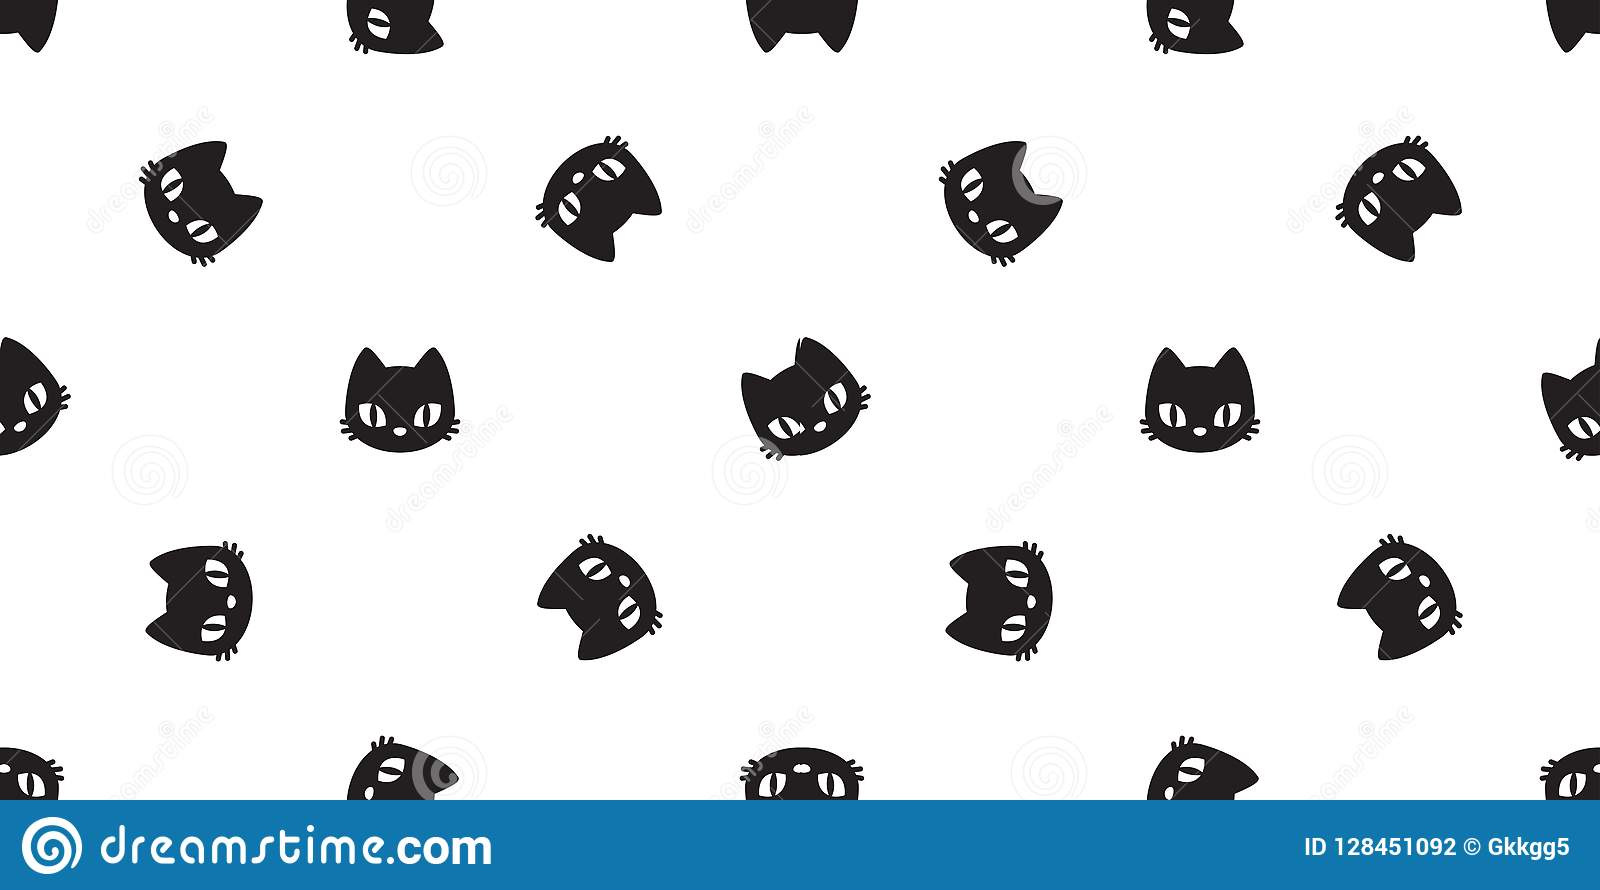 Cat Seamless Pattern Calico Halloween Kitten Tile Background Scarf Isolated Wallpaper